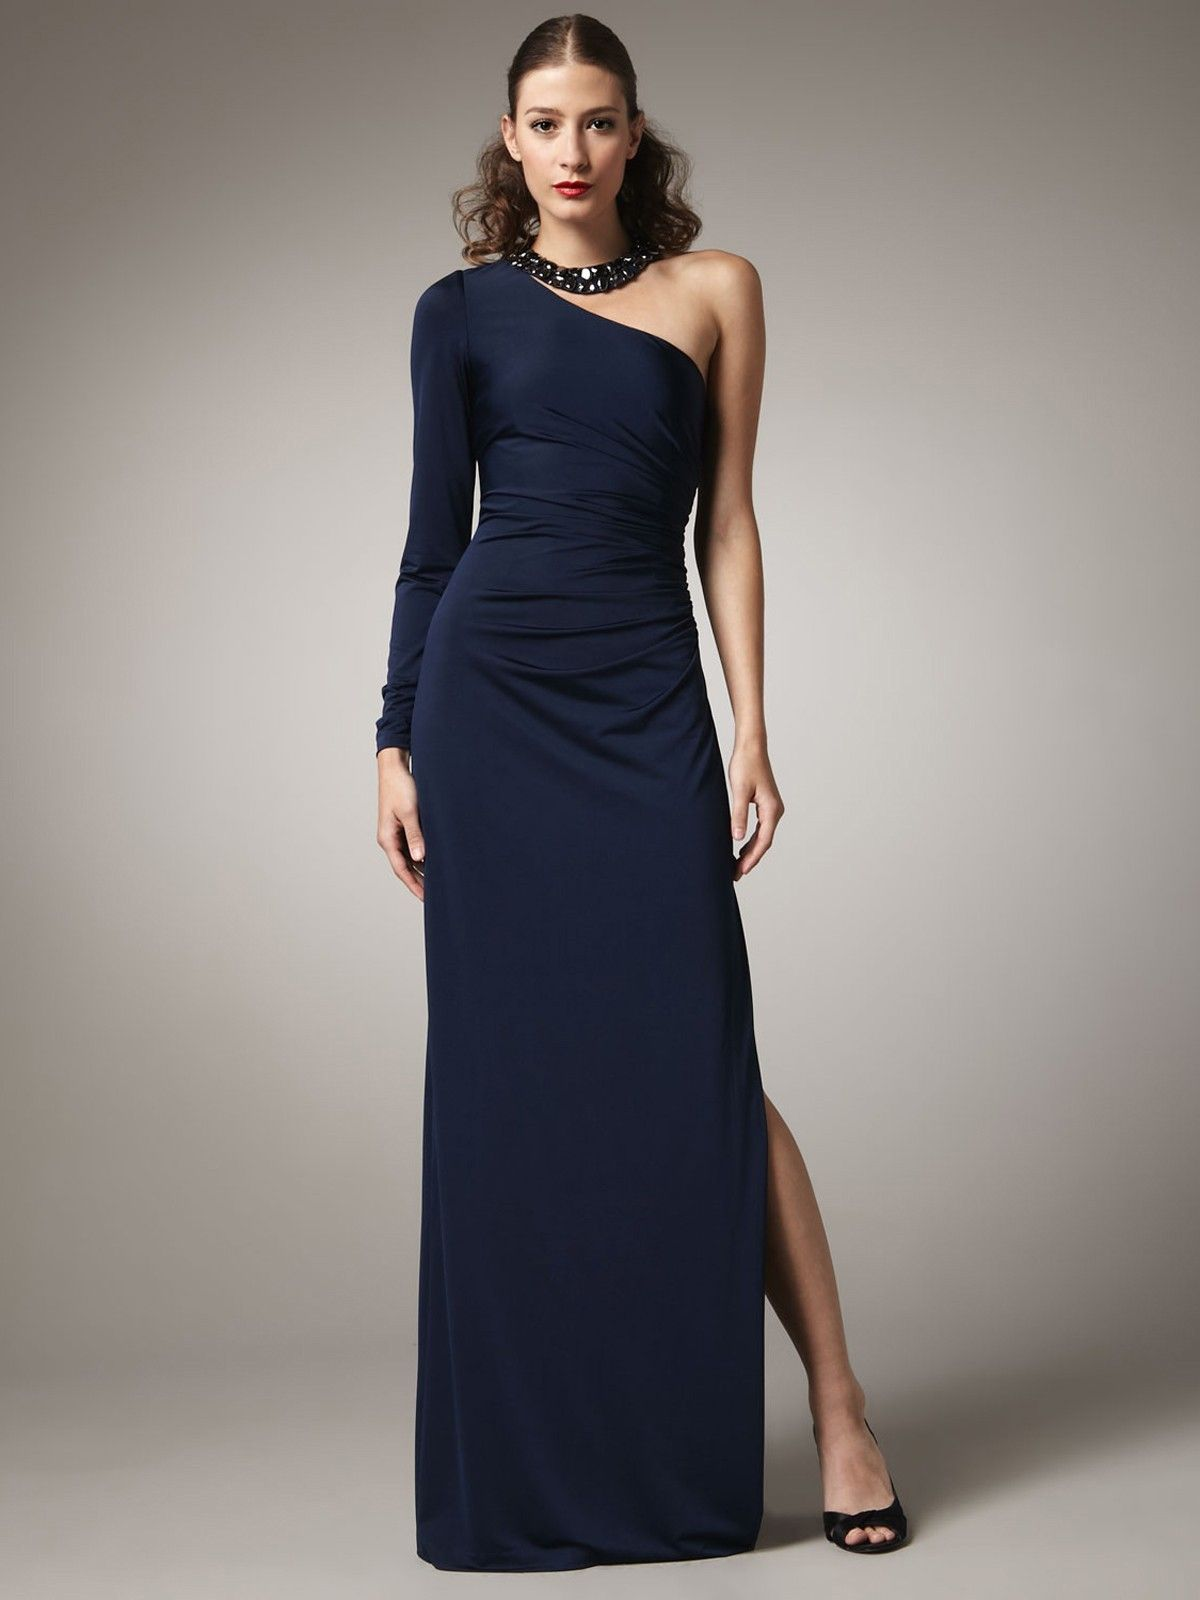 Ultimo - light blue one shoulder long sleeve dress by Elie Saab ...